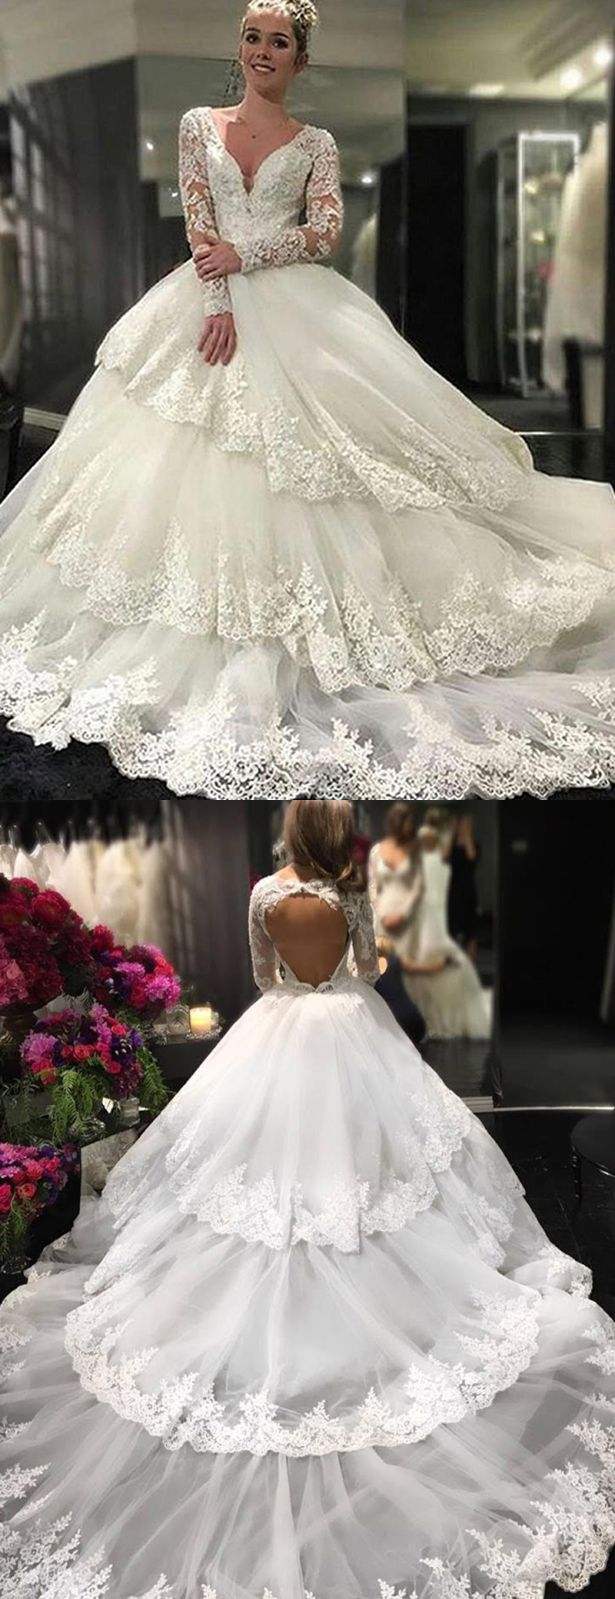 Ivory wedding dresses with sleeves  Ivory Deep VNeck Long Sheer Sleeves Lace Appliques Chapel Train